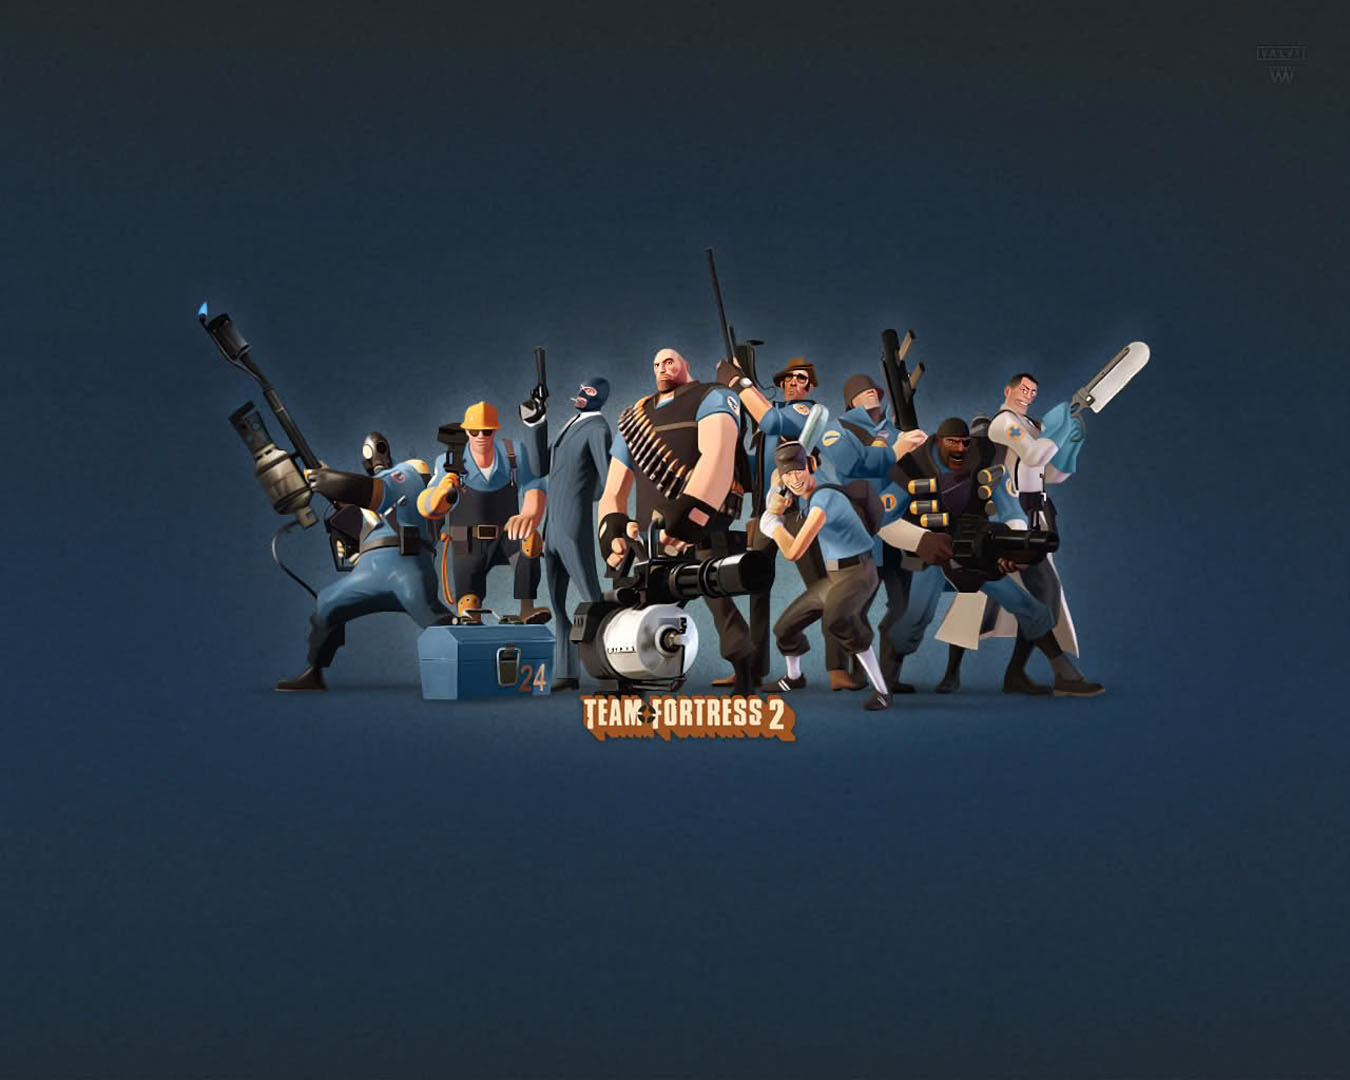 Blue Team Team Fortress 2 Wallpaper HD Wallpapers Download Free Images Wallpaper [1000image.com]